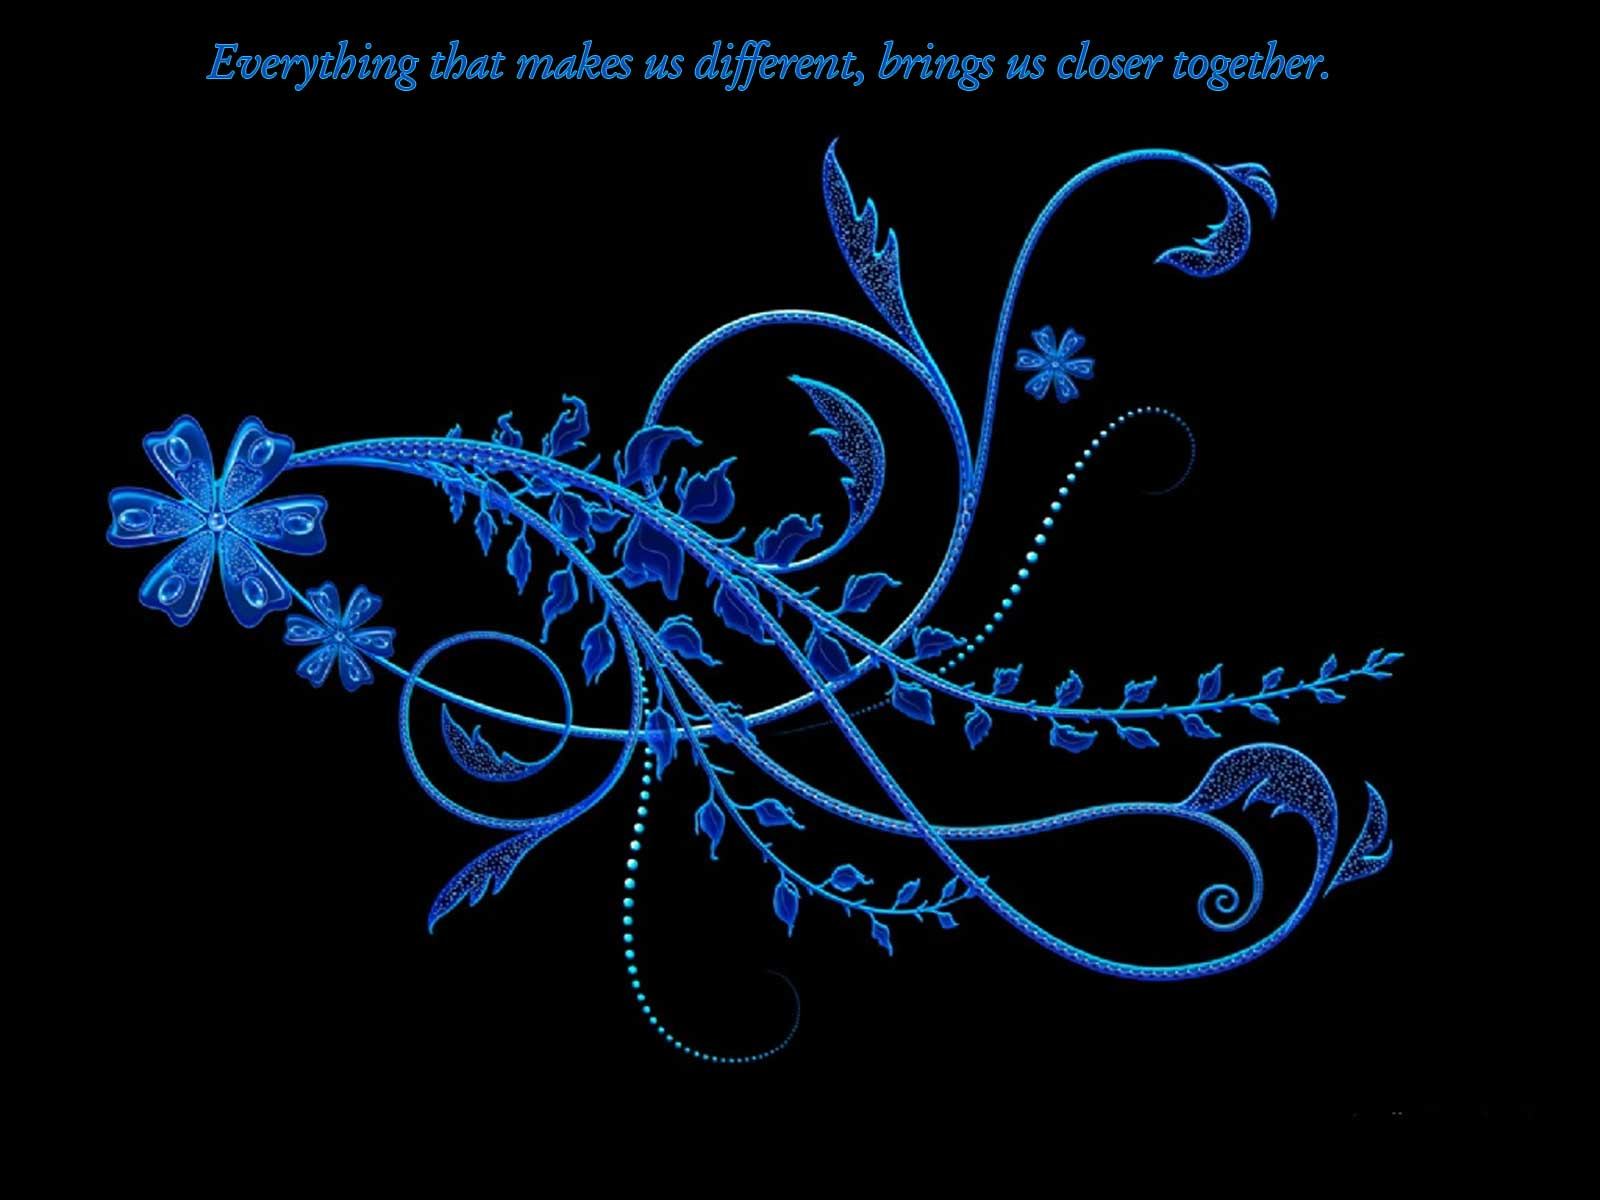 Everything that makes us different